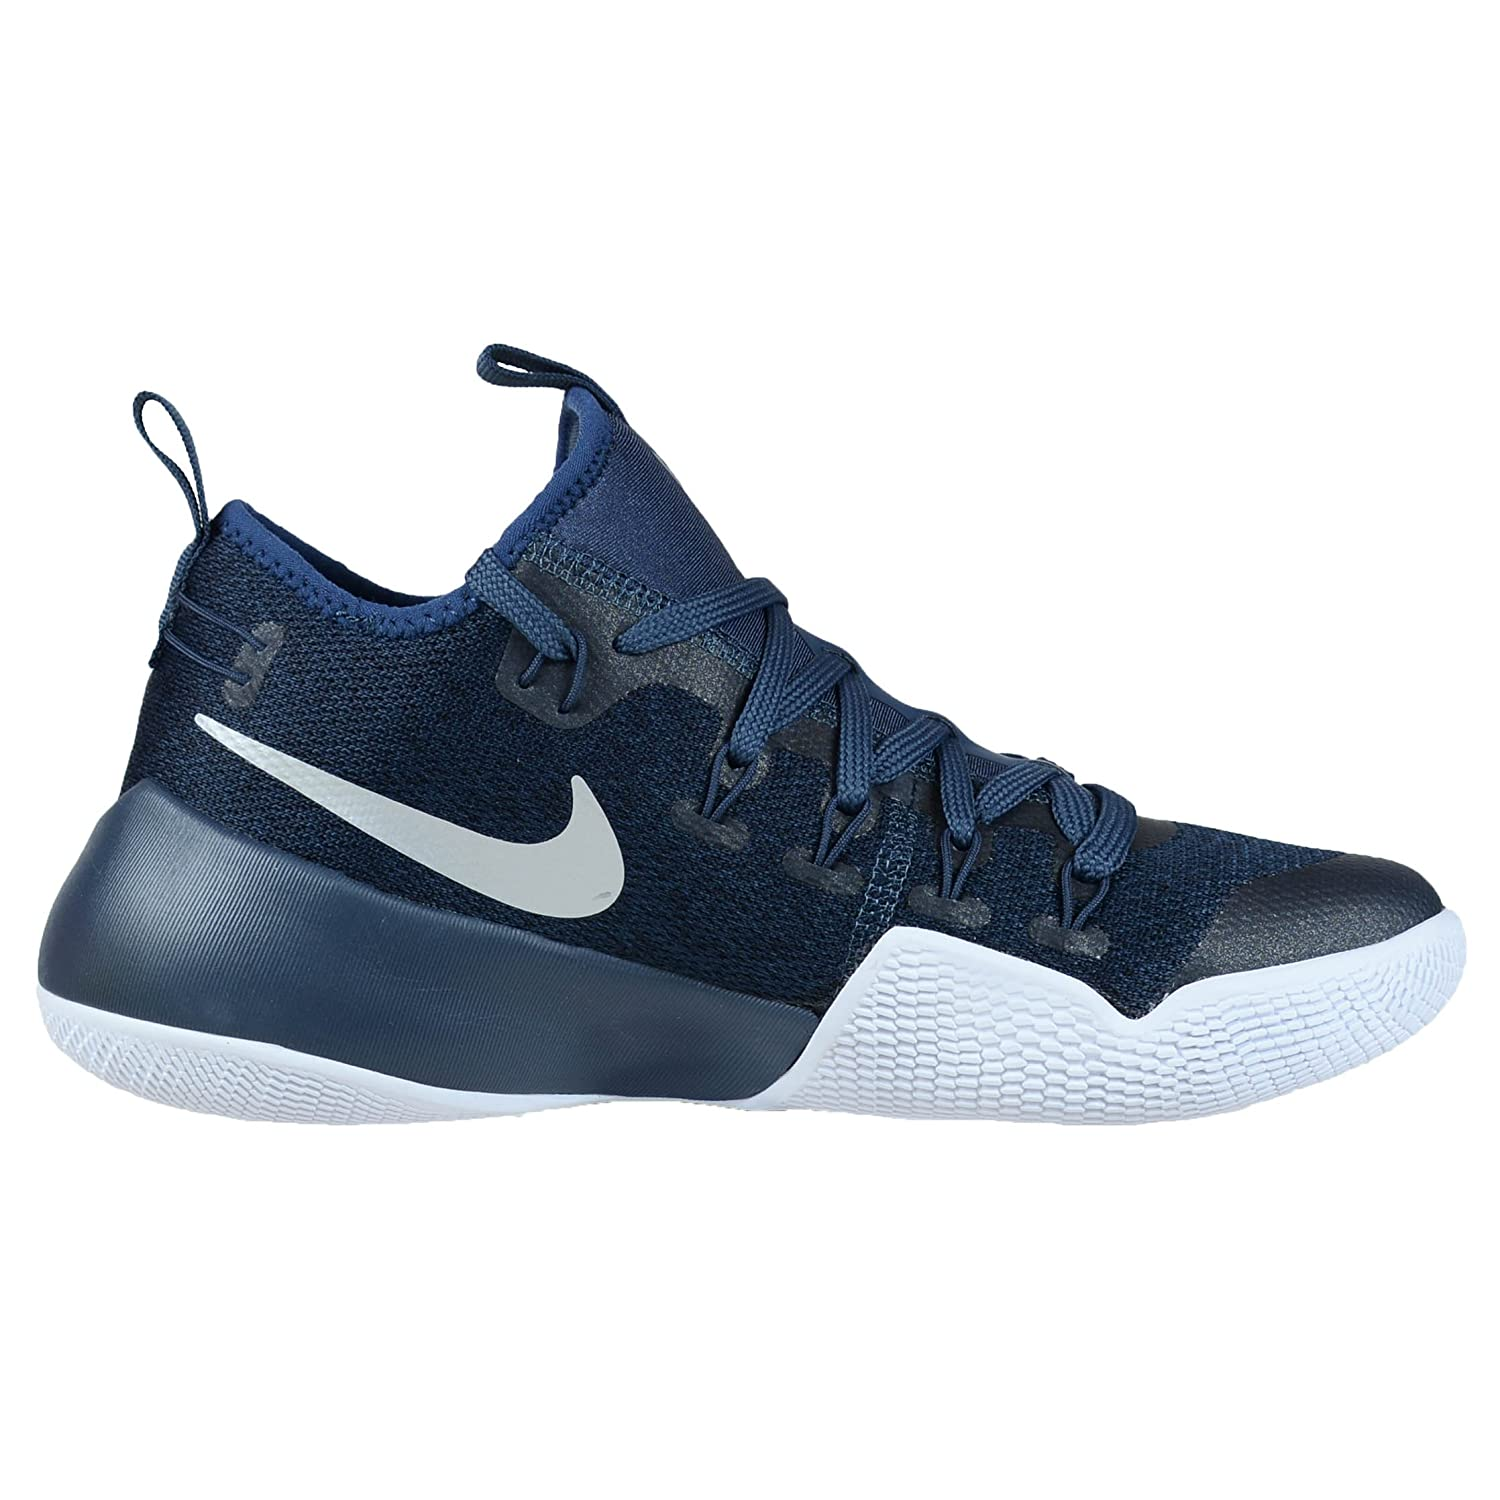 on sale a6ce7 4259c ... usa amazon nike hypershift tb promo mens mesh lace up basketball shoes  basketball 895d7 9c5a8